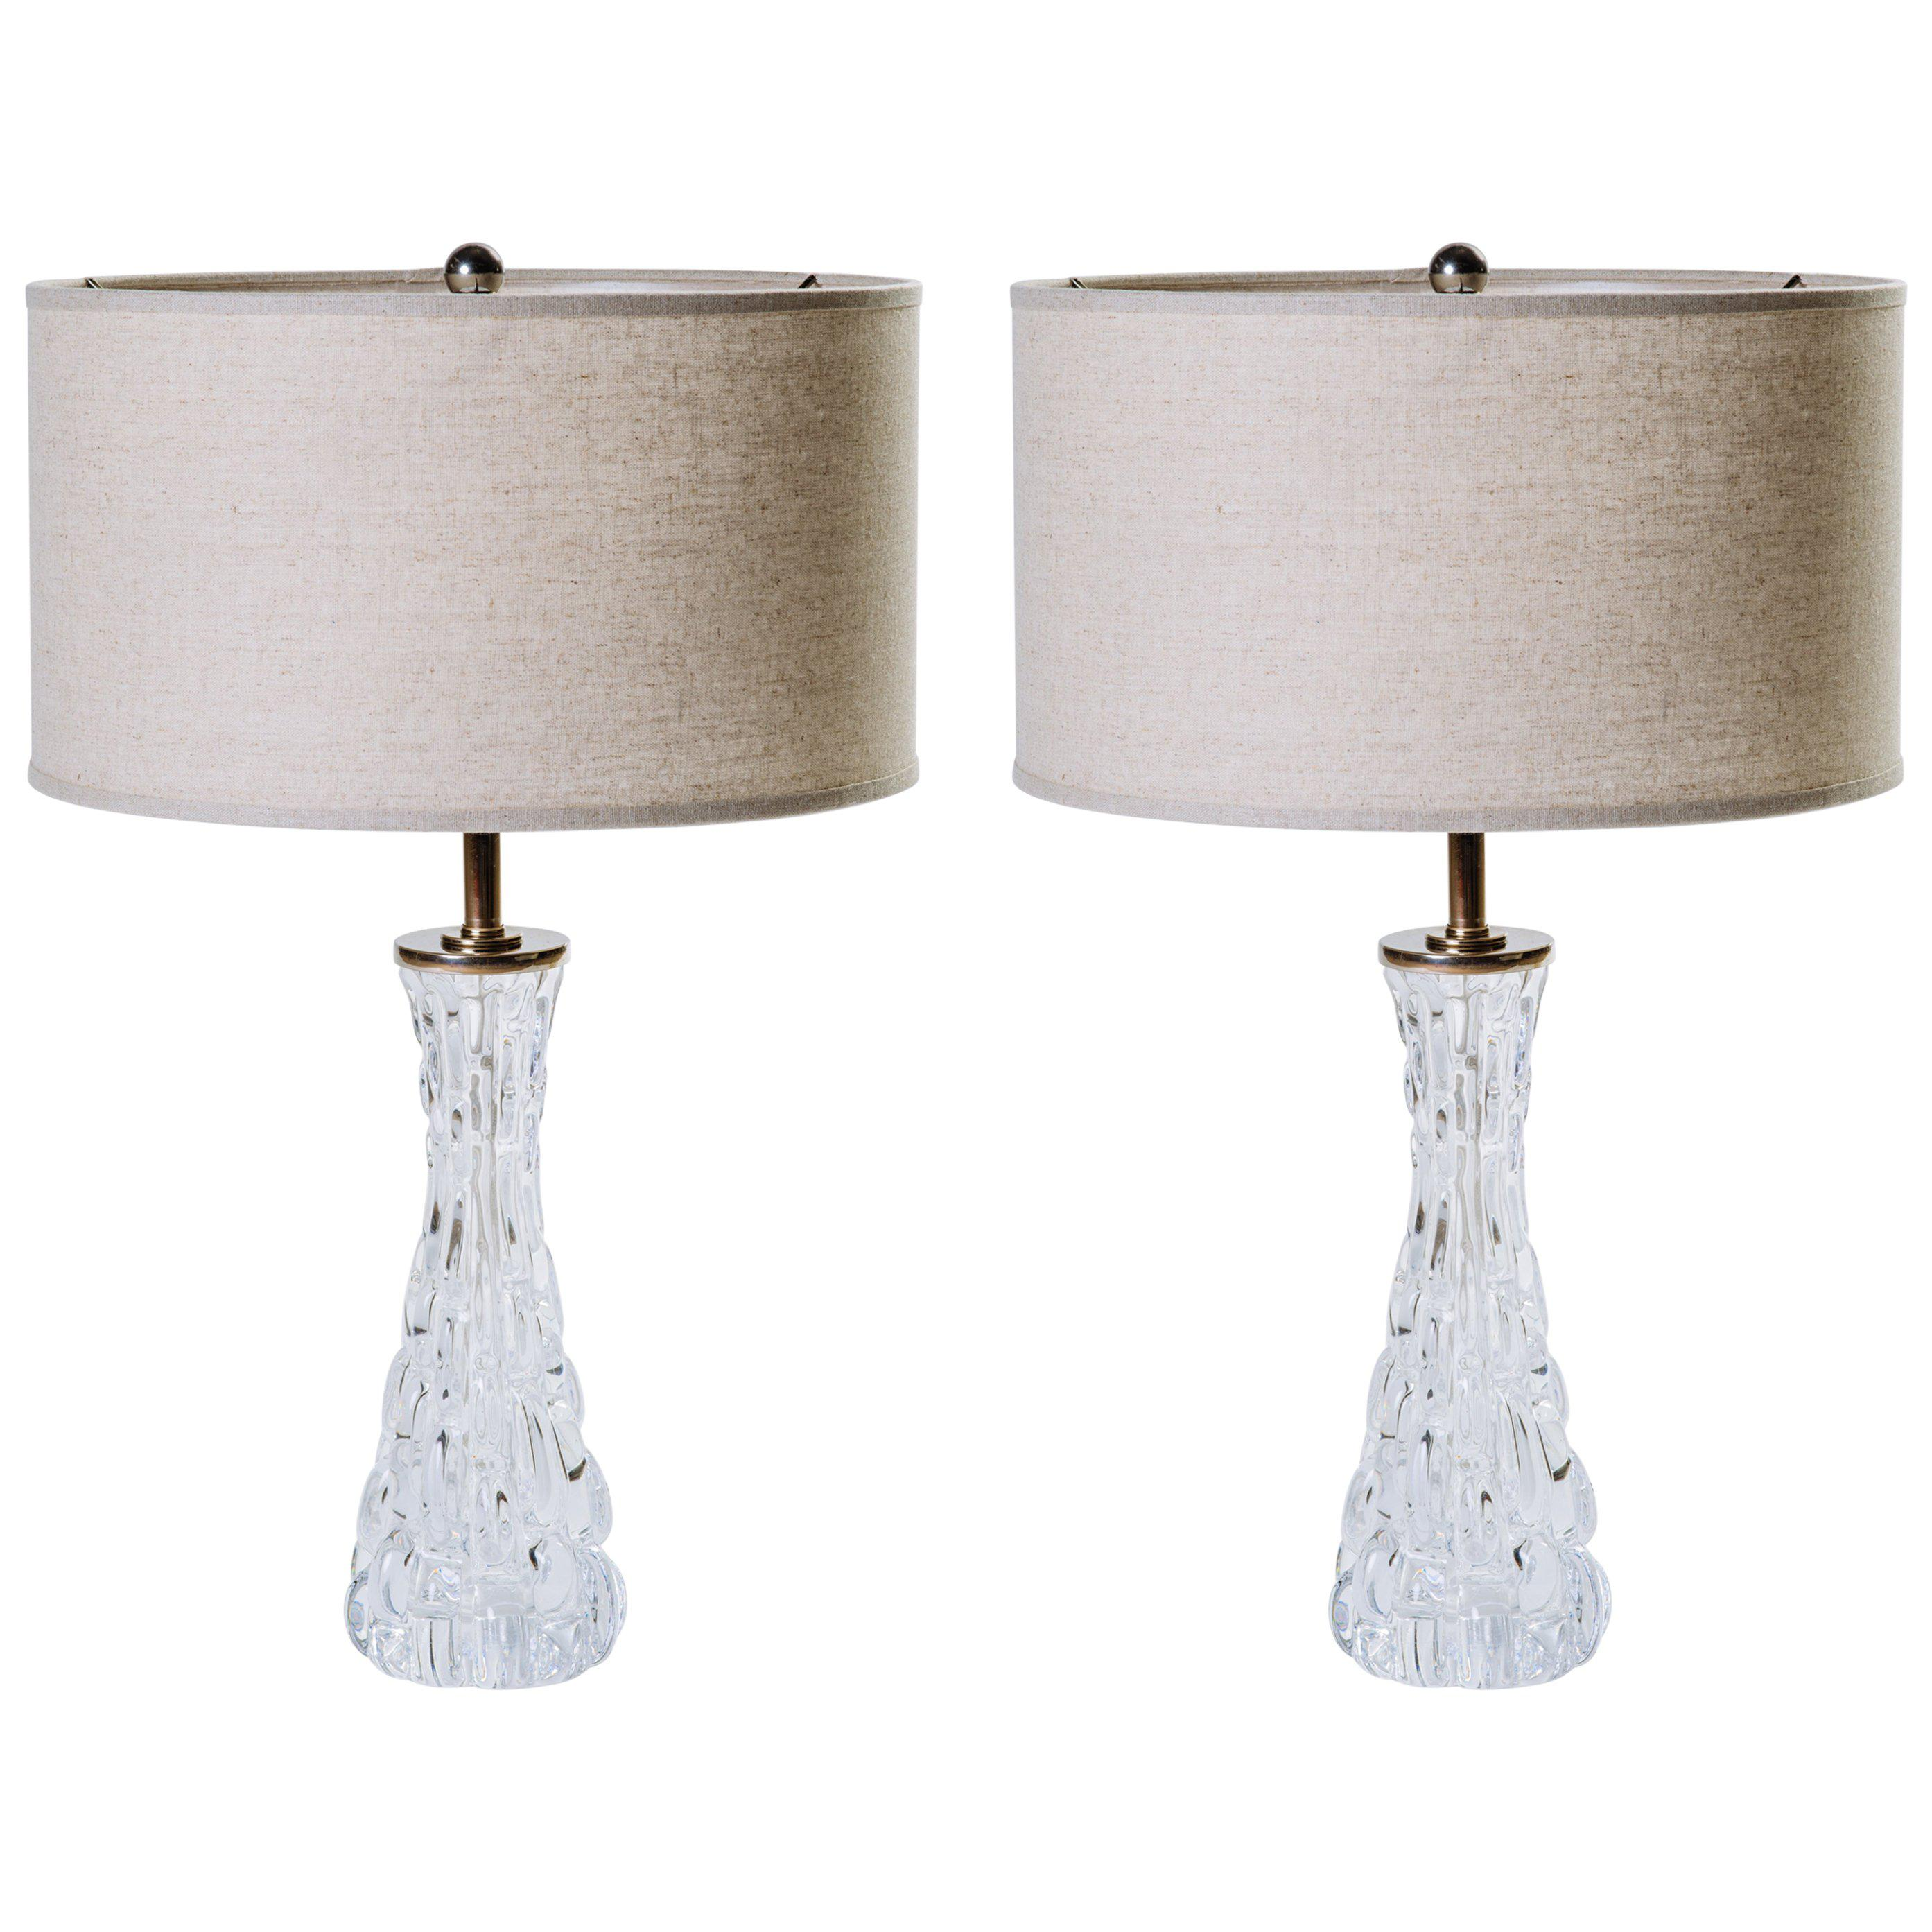 Pair of Elegant Ice Glass Lamps by Carl Fagerlund for Orrefors